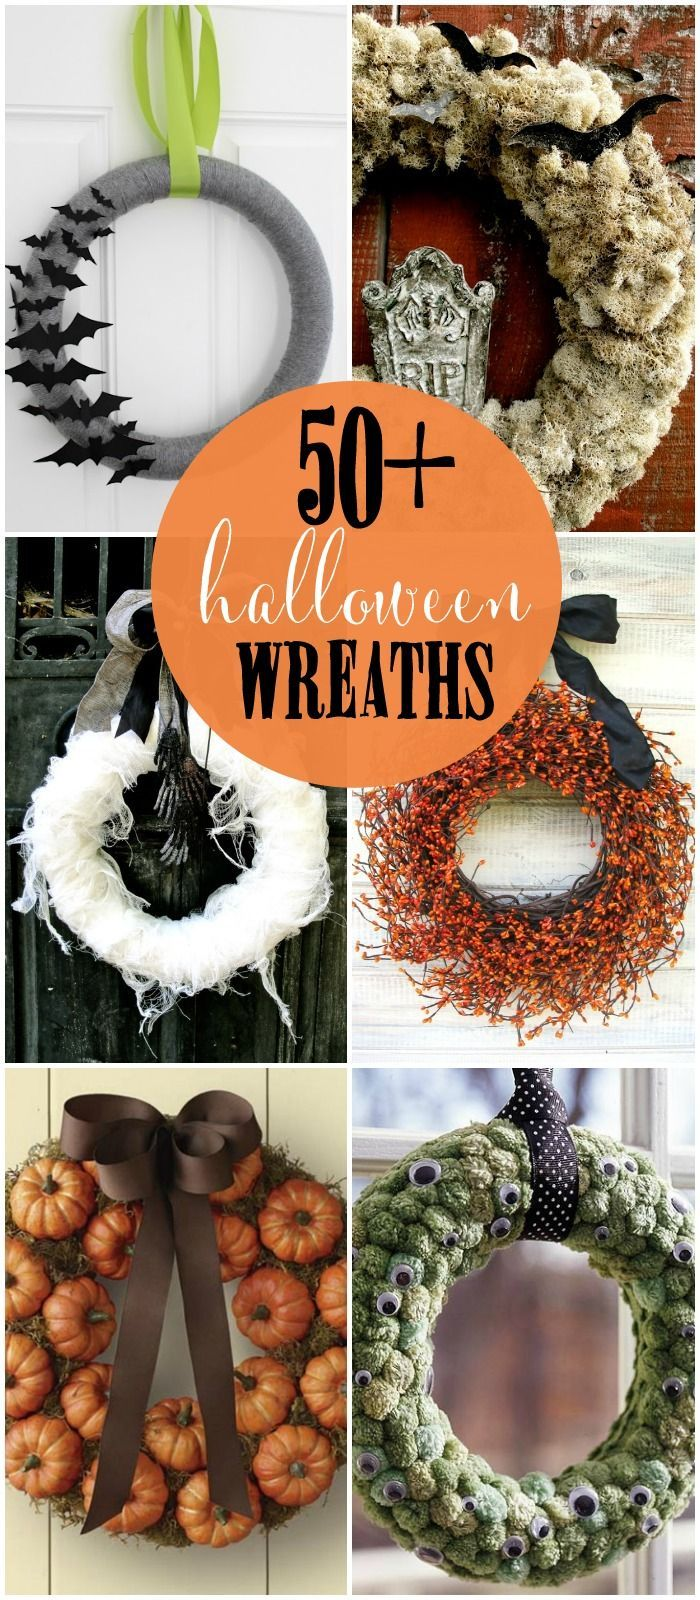 These fun DIY wreaths range from spooky and scary to sophisticated and refined. Which one would you choose to welcome your guests this Halloween?